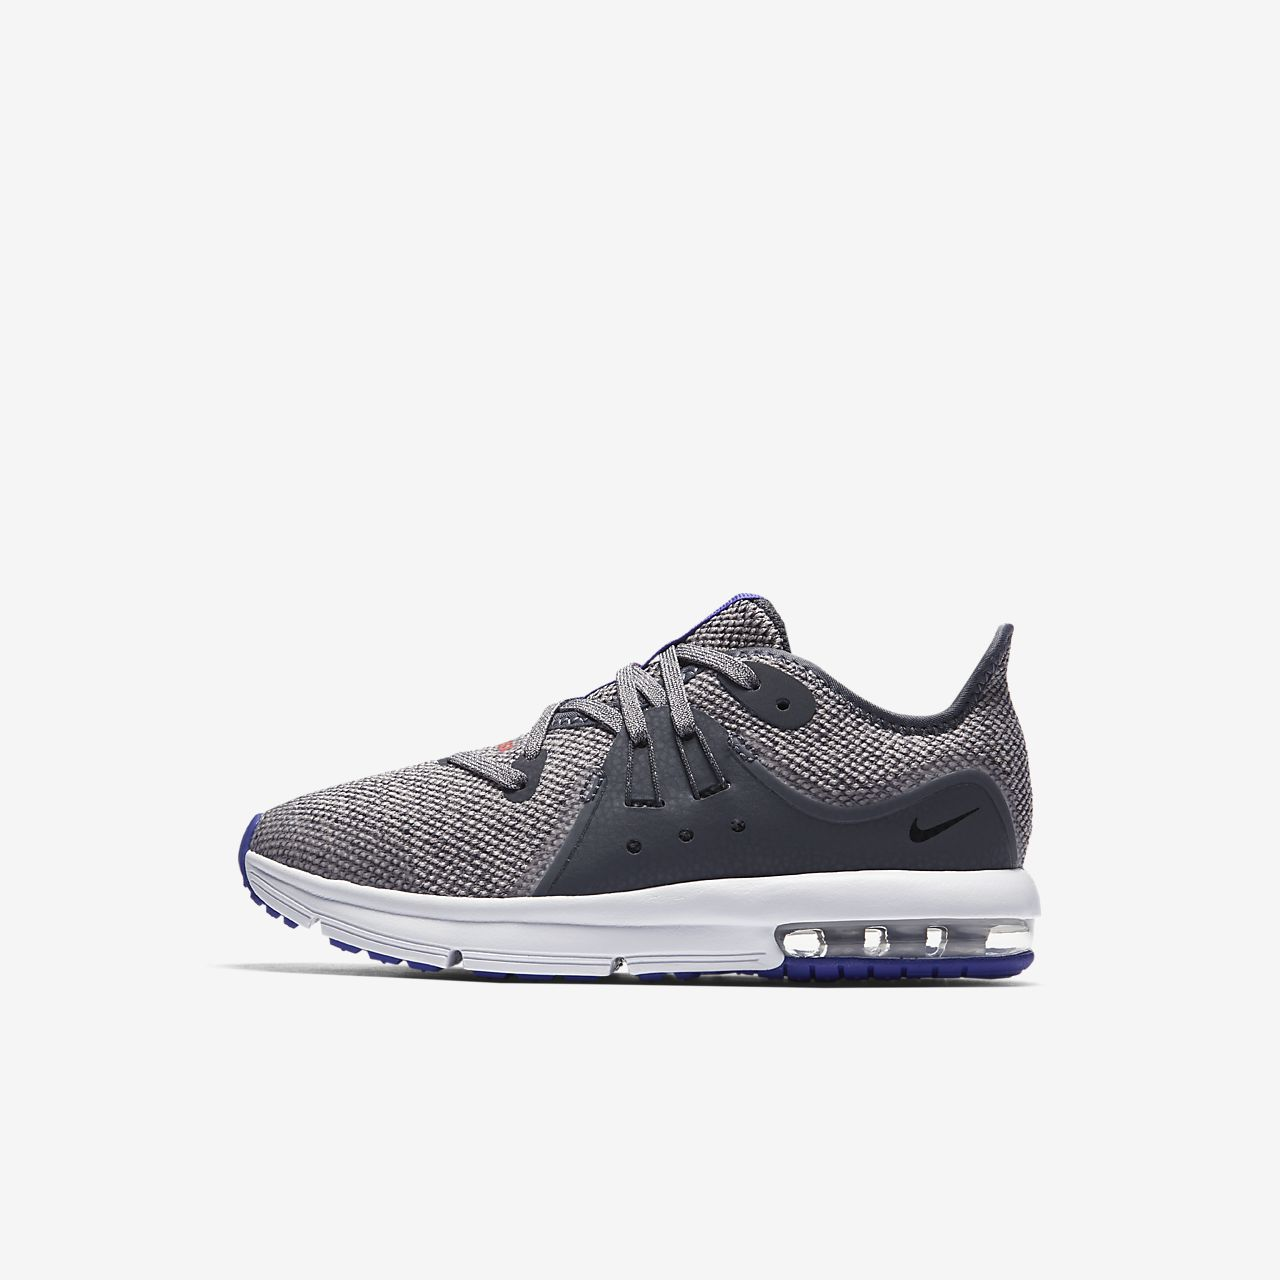 Nike Air Max Sequent 3 (PS) 幼童运动童鞋